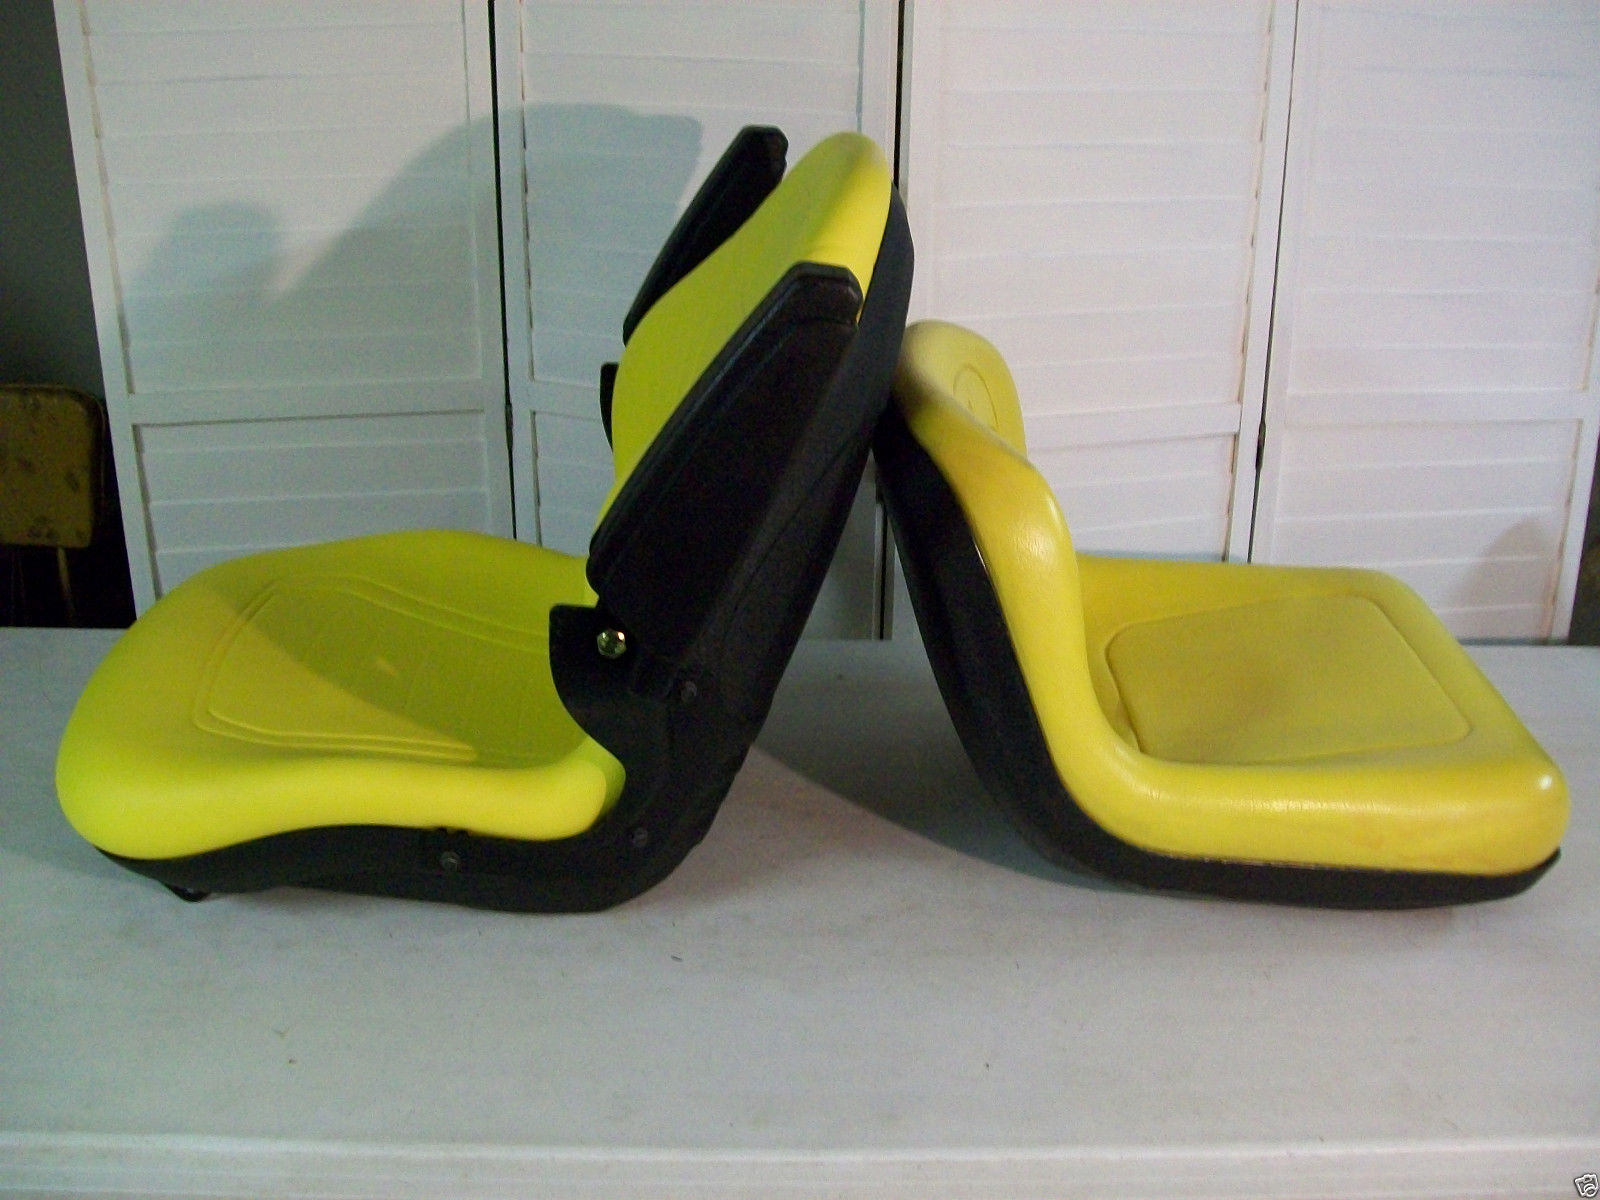 John Deere 445 Tractor Seats Replacement : Yellow seat for john deere